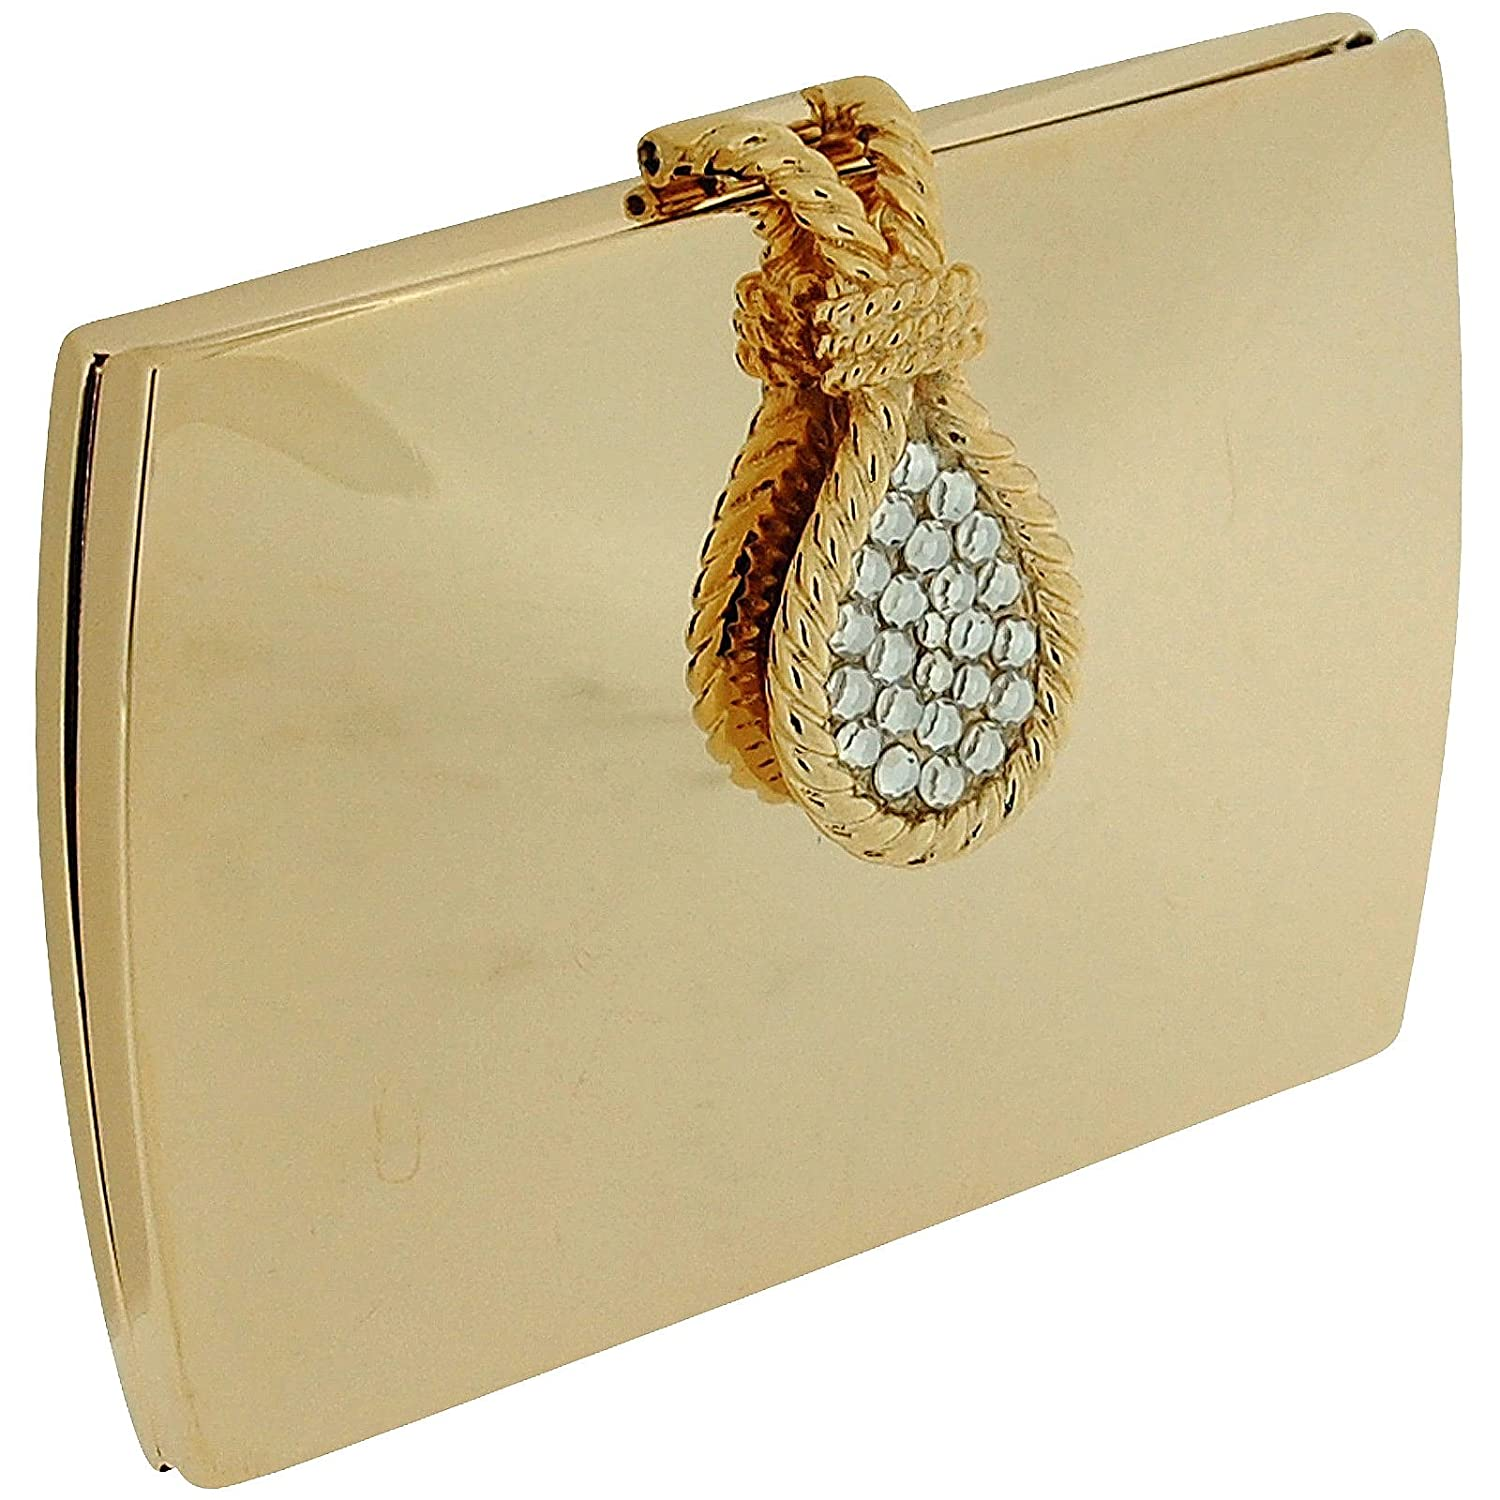 Compact Mirror Gold Tone Polished Envelope Mirror With Crystal Set Lever Opener SC967 Danielle